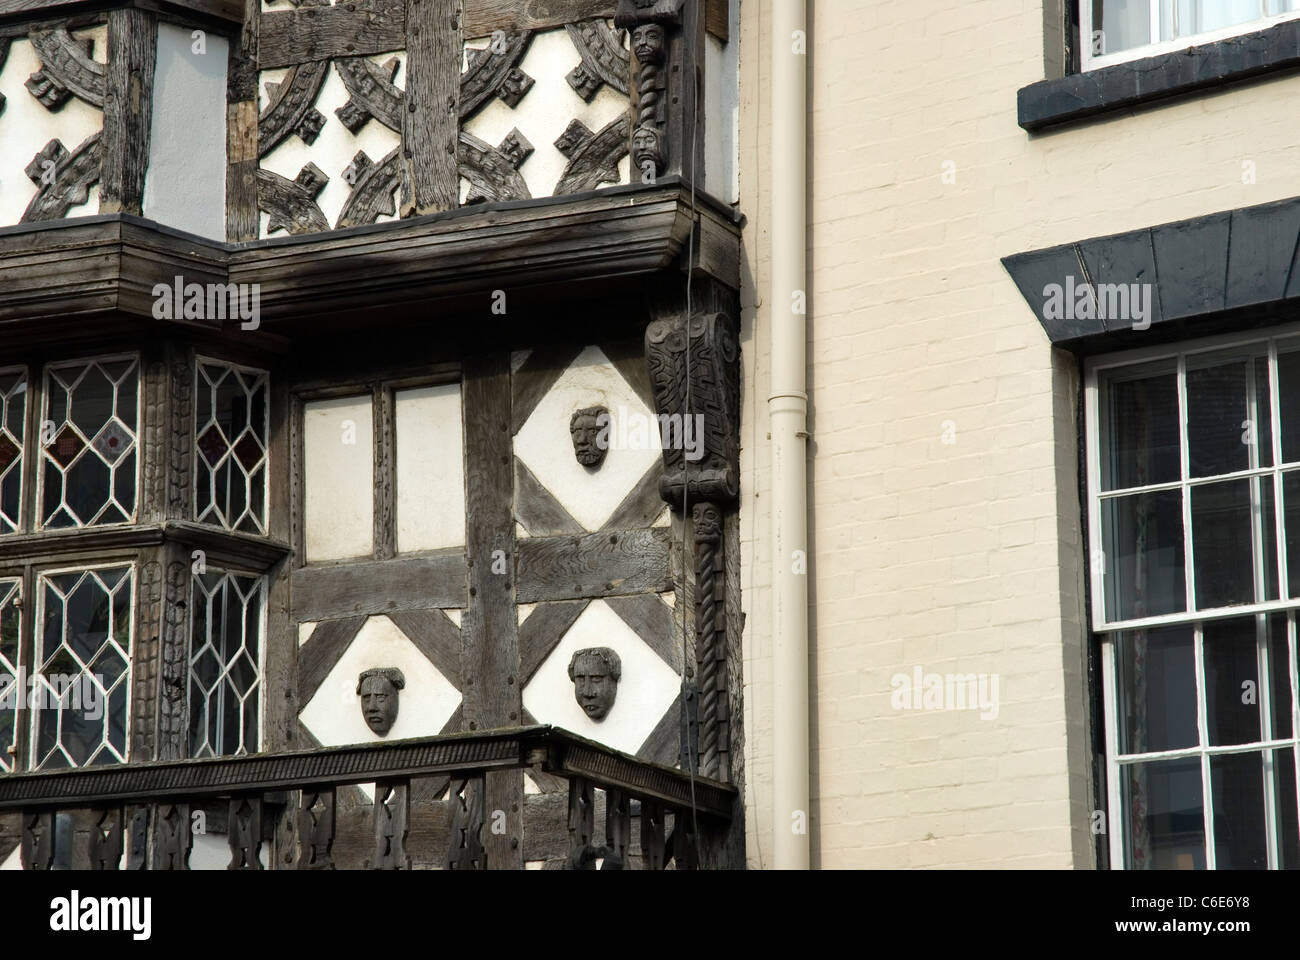 The Feathers Hotel, Ludlow, Shropshire, GB. Stock Photo